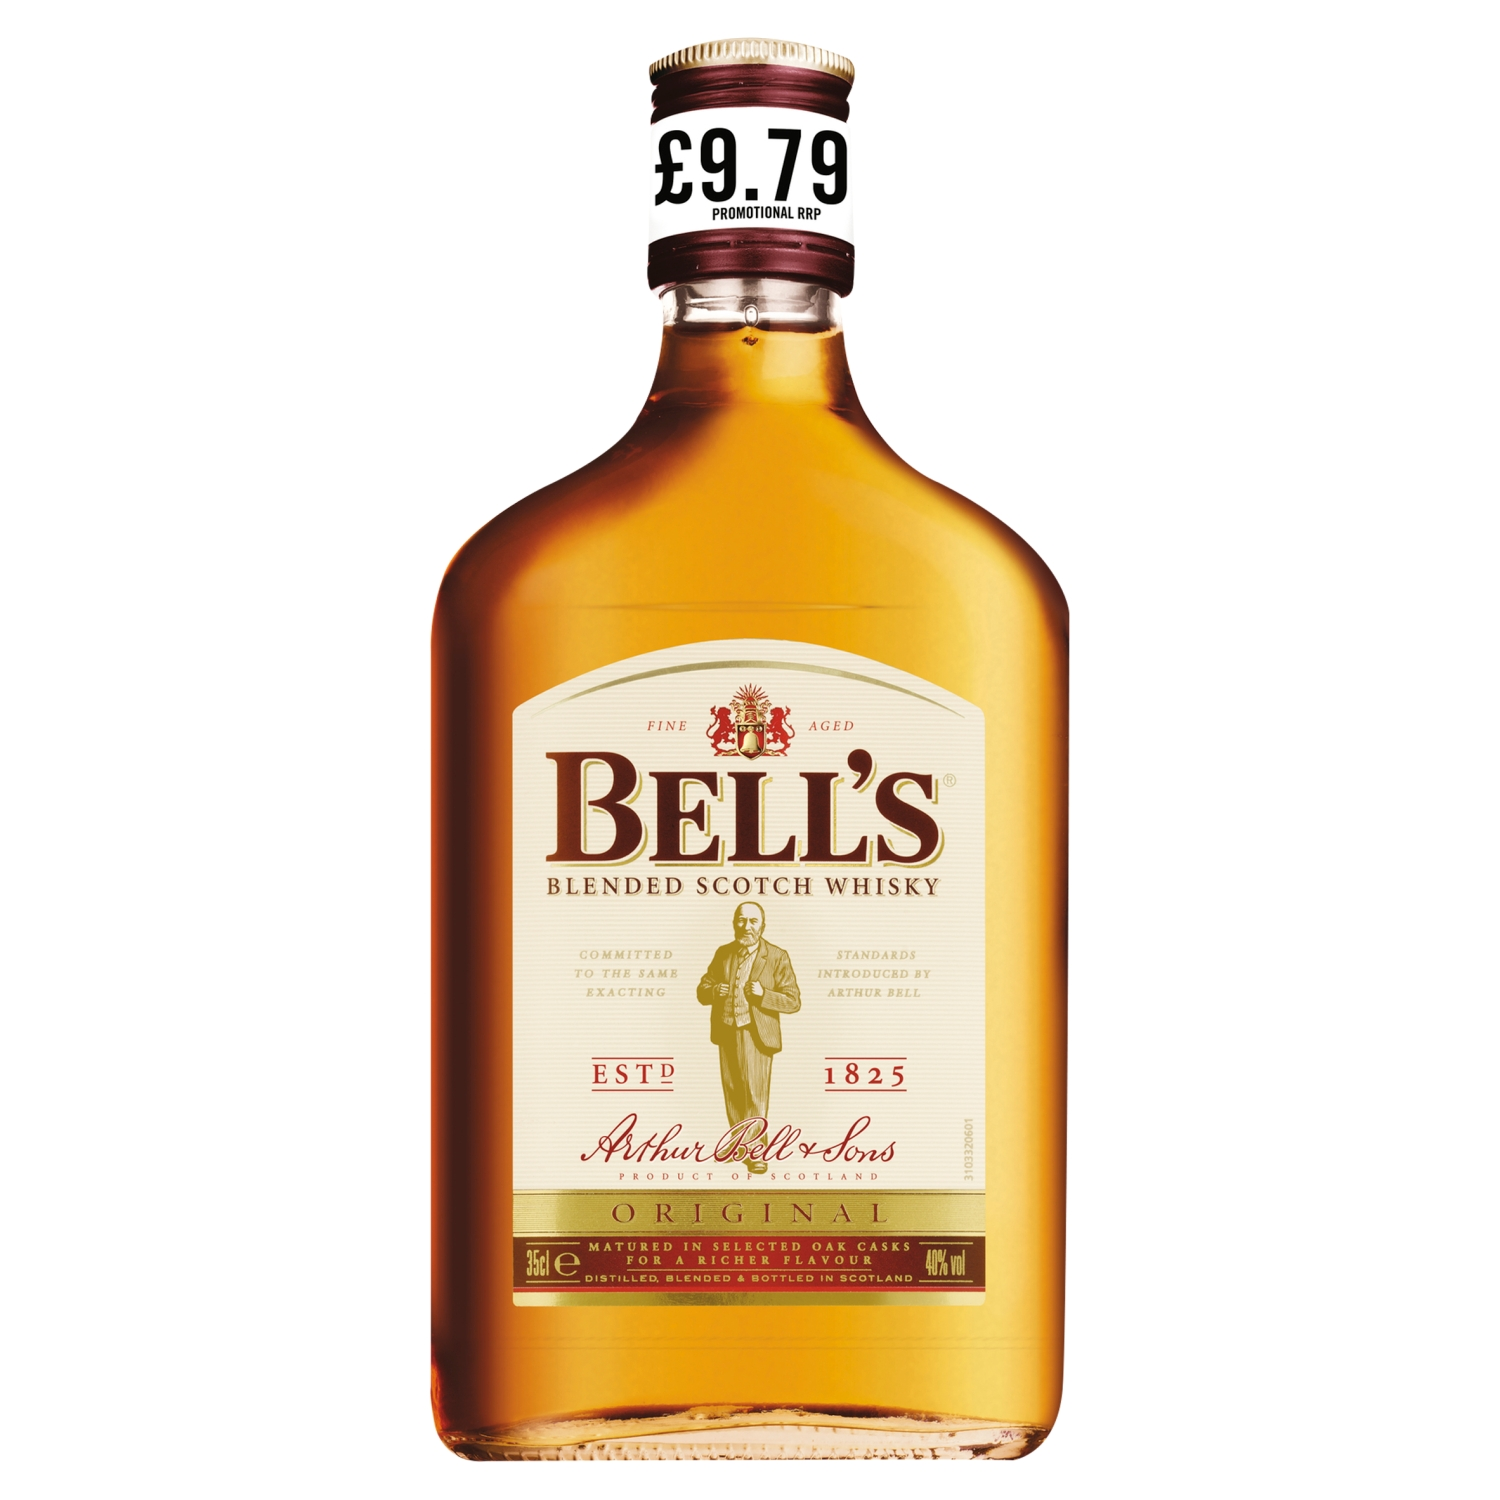 Bell's Whisky 35cl PMP £9.79